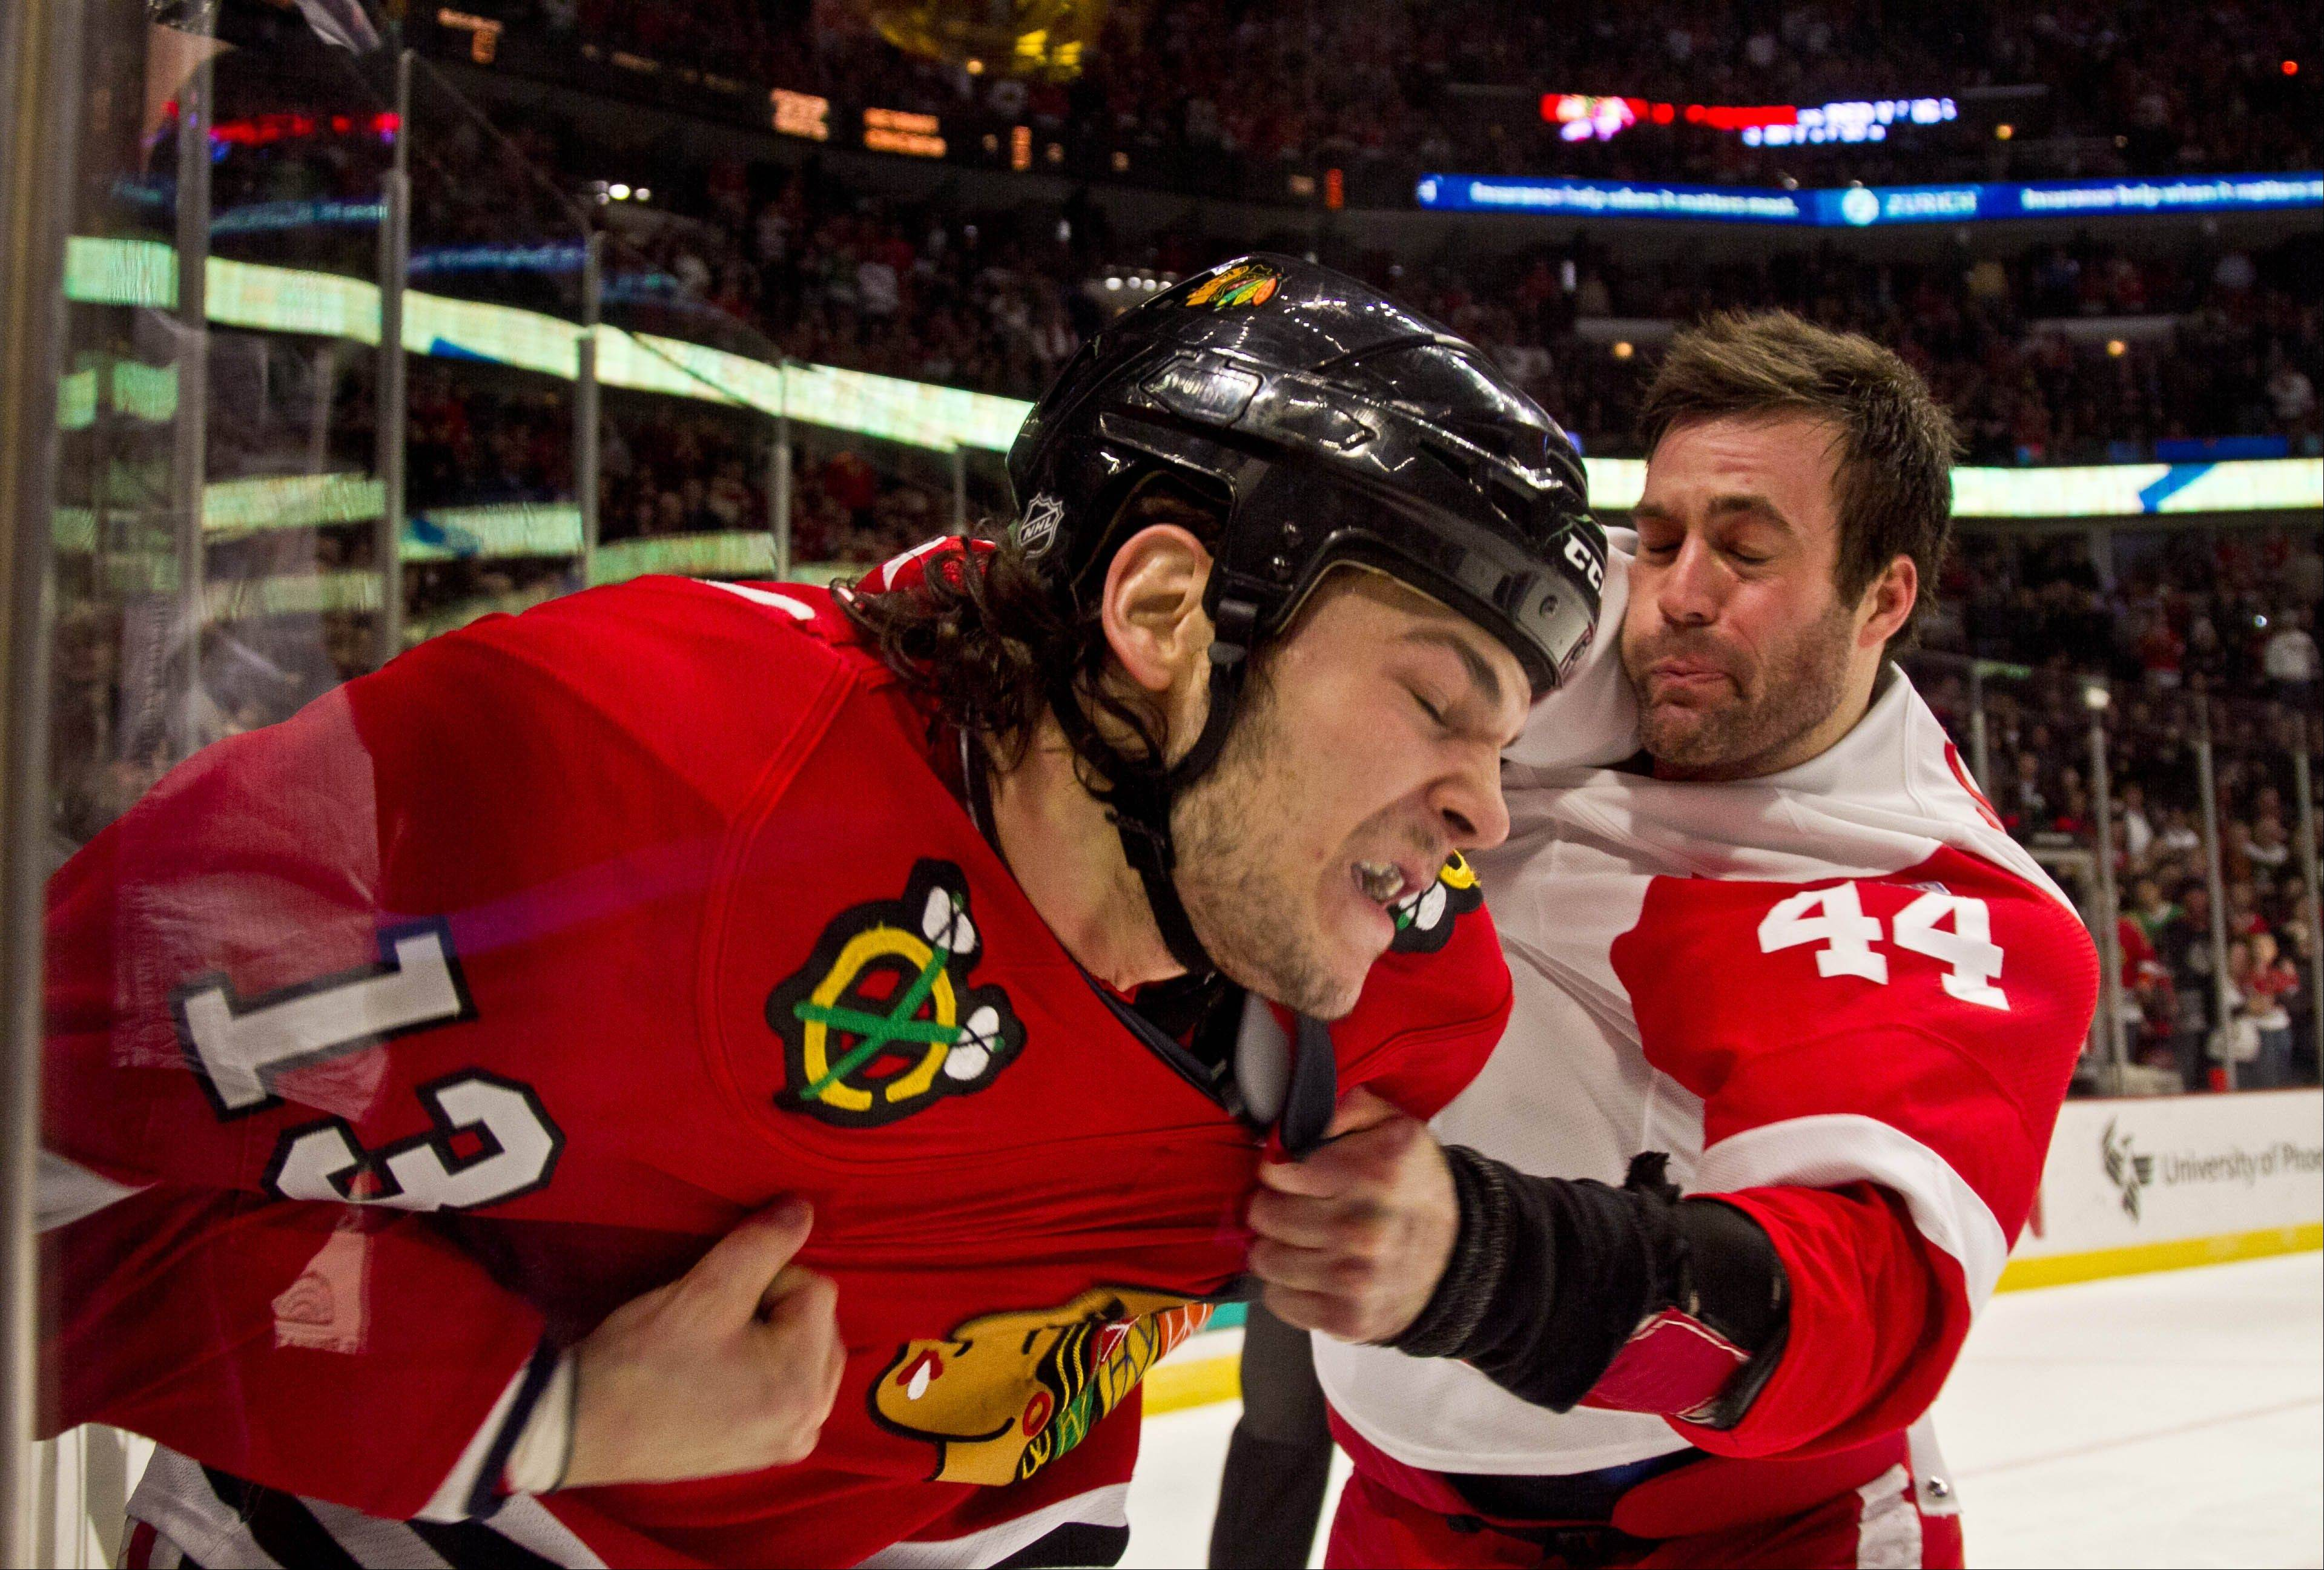 Seabrook lifts Hawks over rival Red Wings 3-2